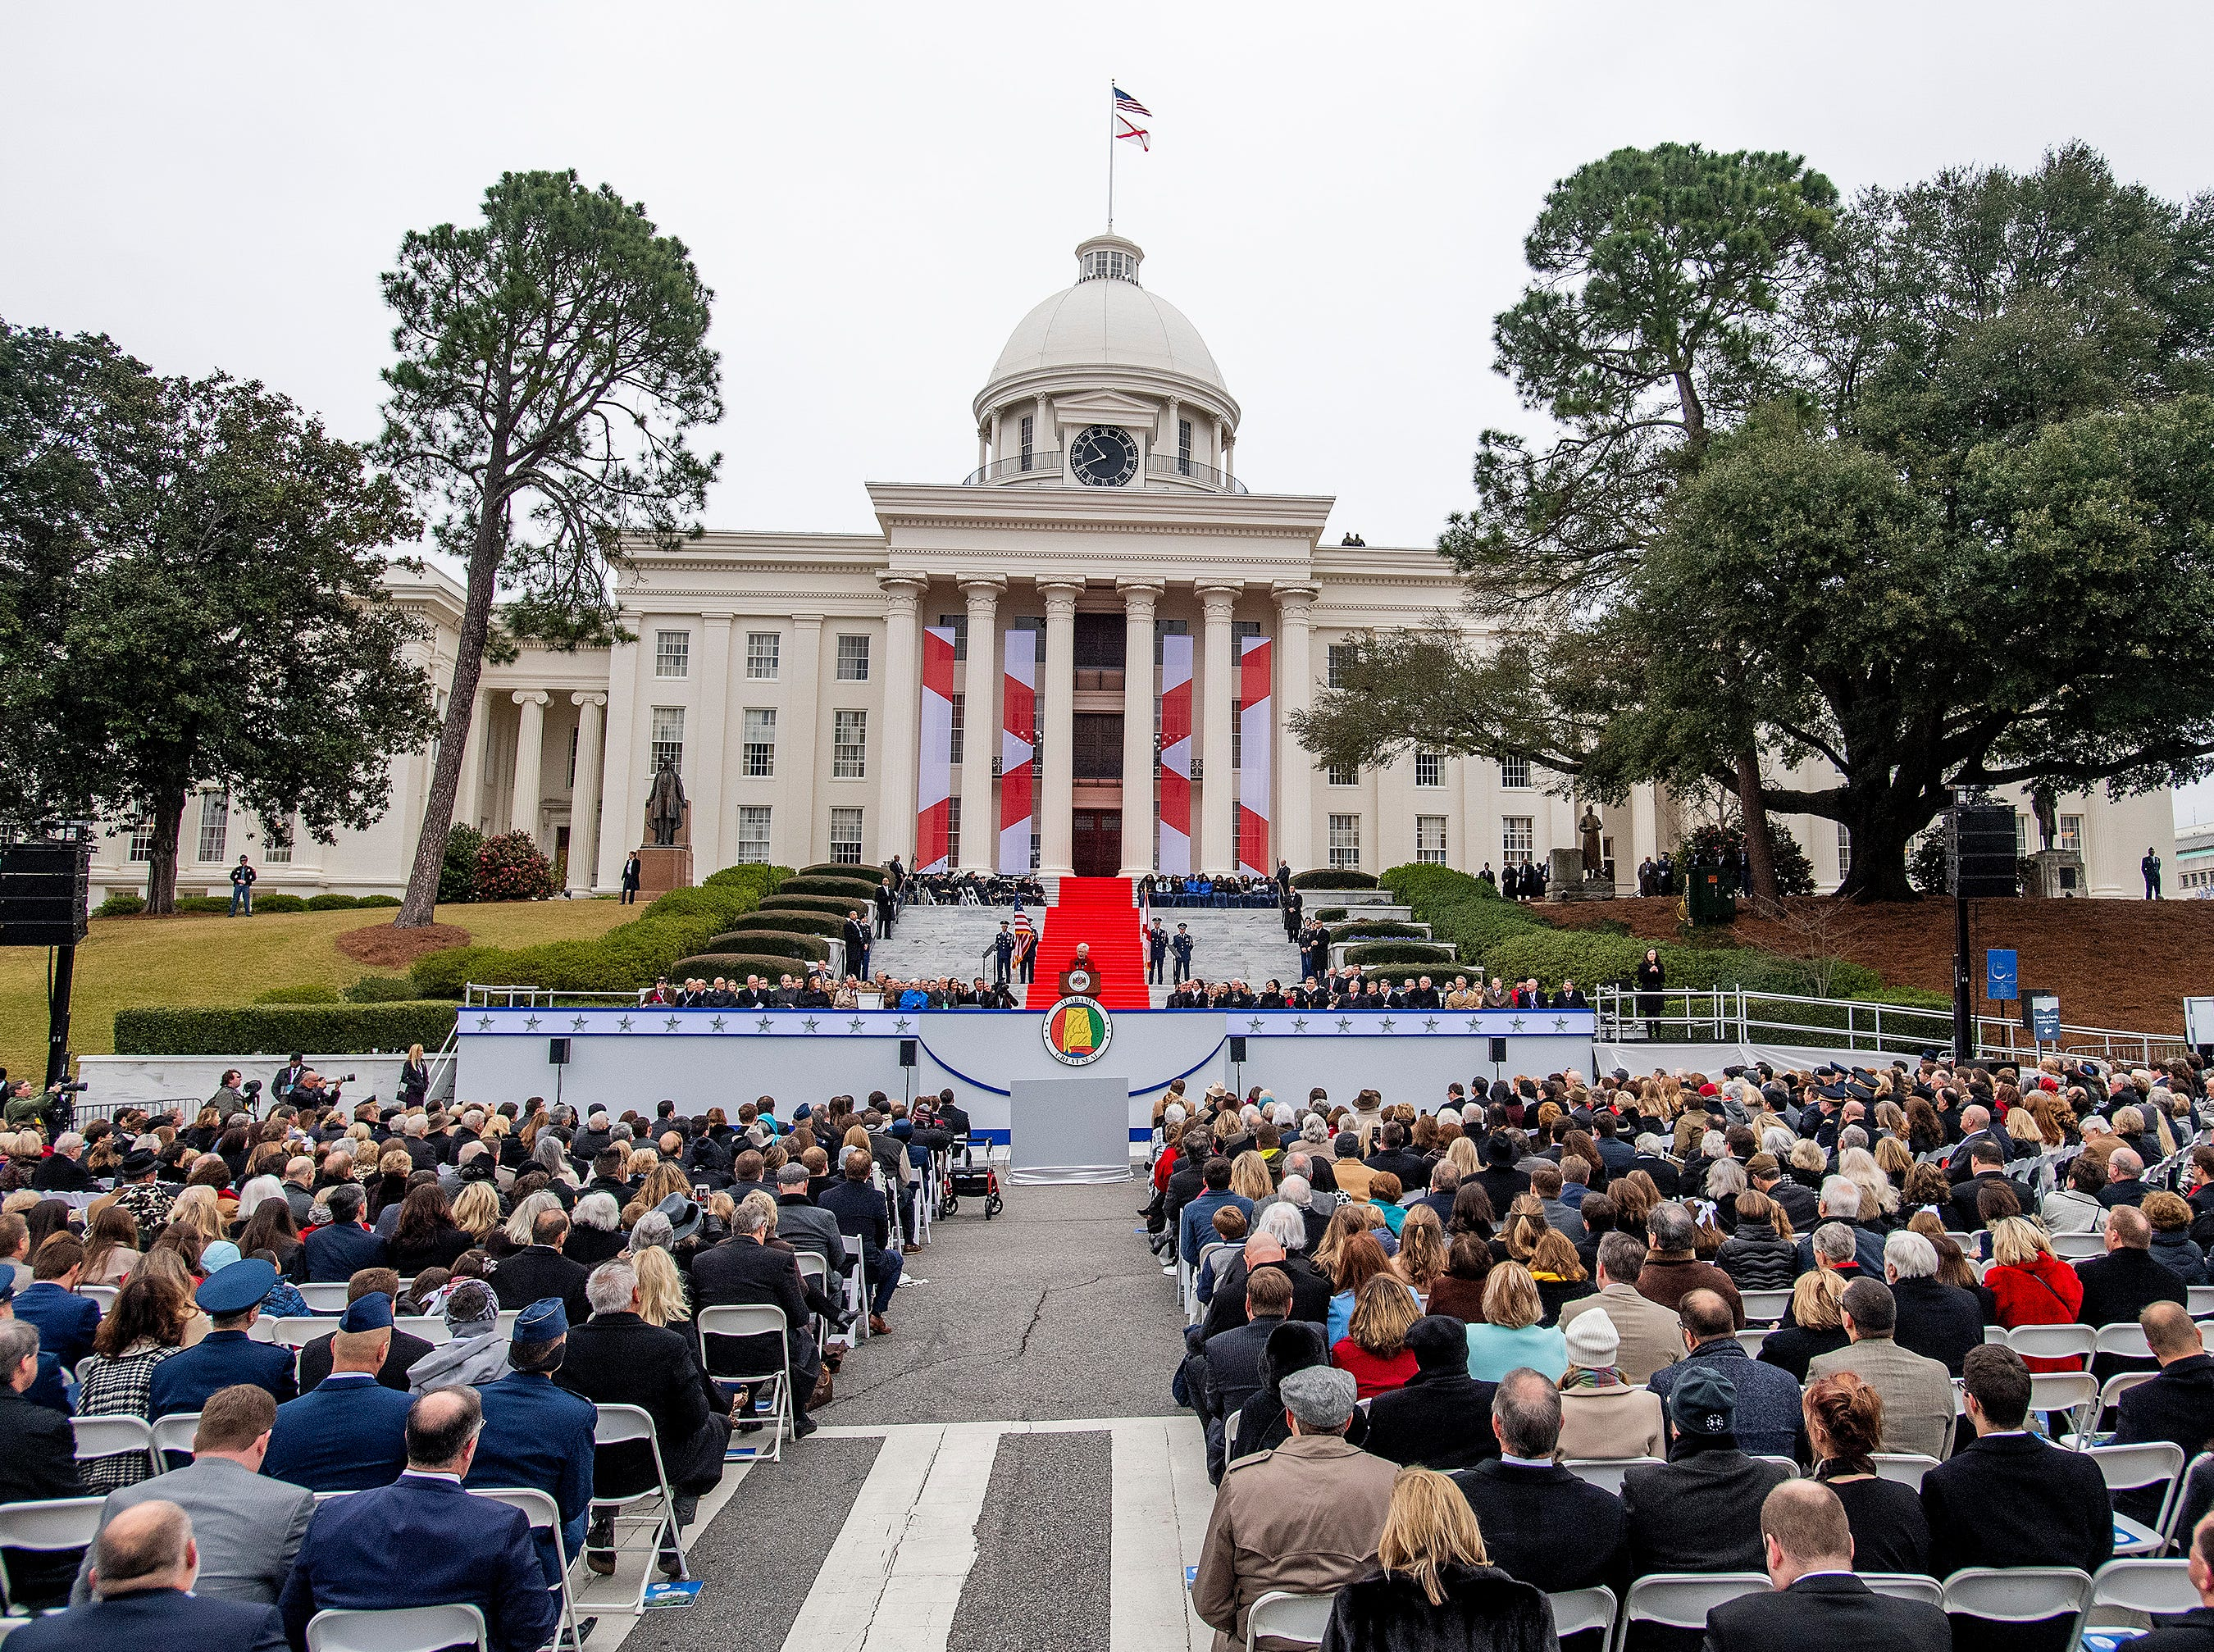 Governor Kay Ivey speaks at her inauguration on the state capitol steps in Montgomery, Ala., on Monday January 14, 2019.